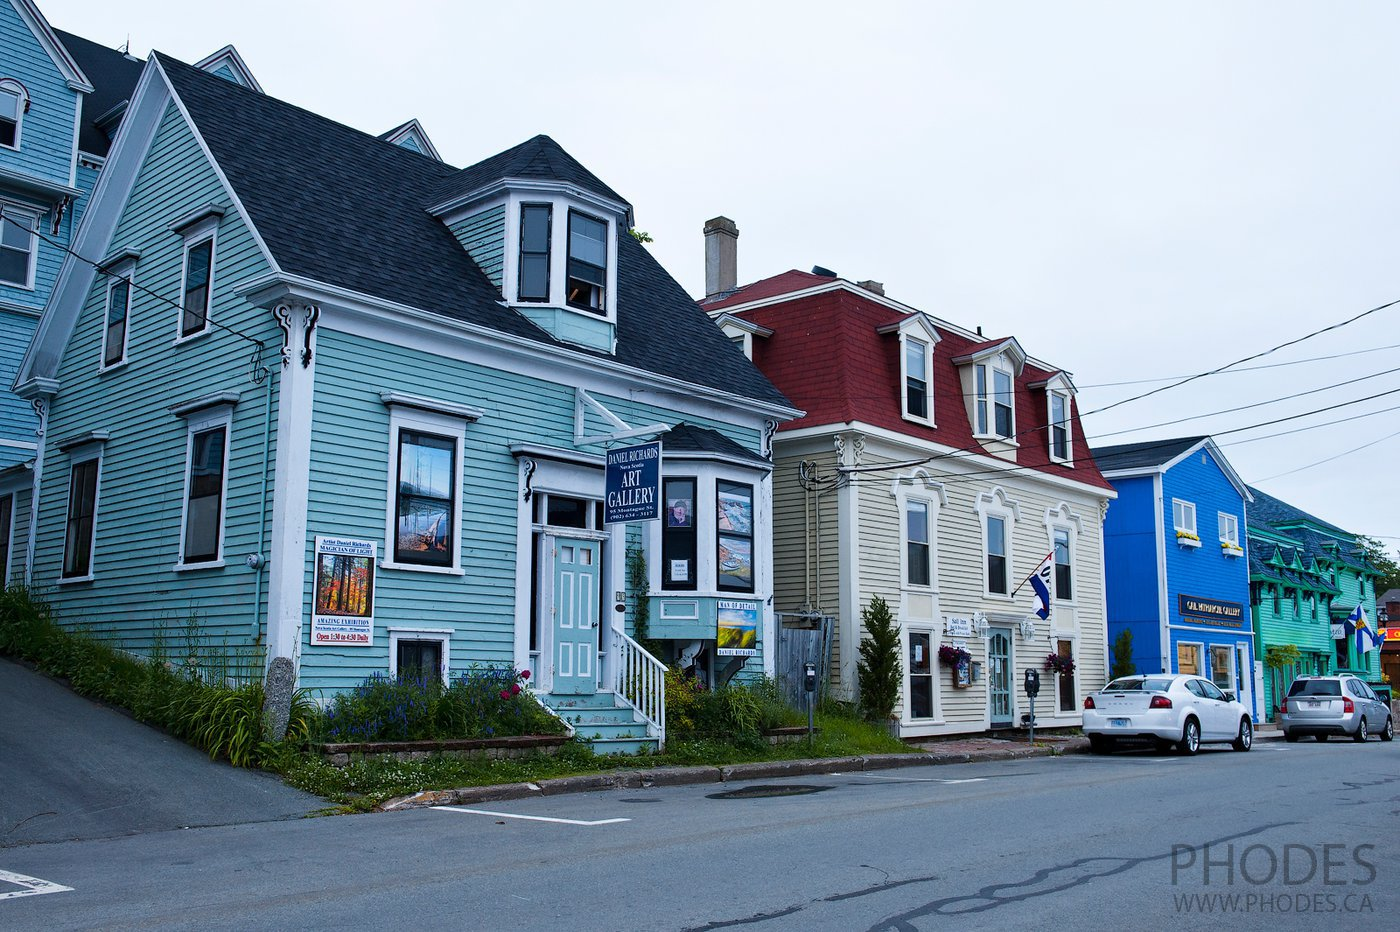 Houses in Lunenburg in Nova Scotia